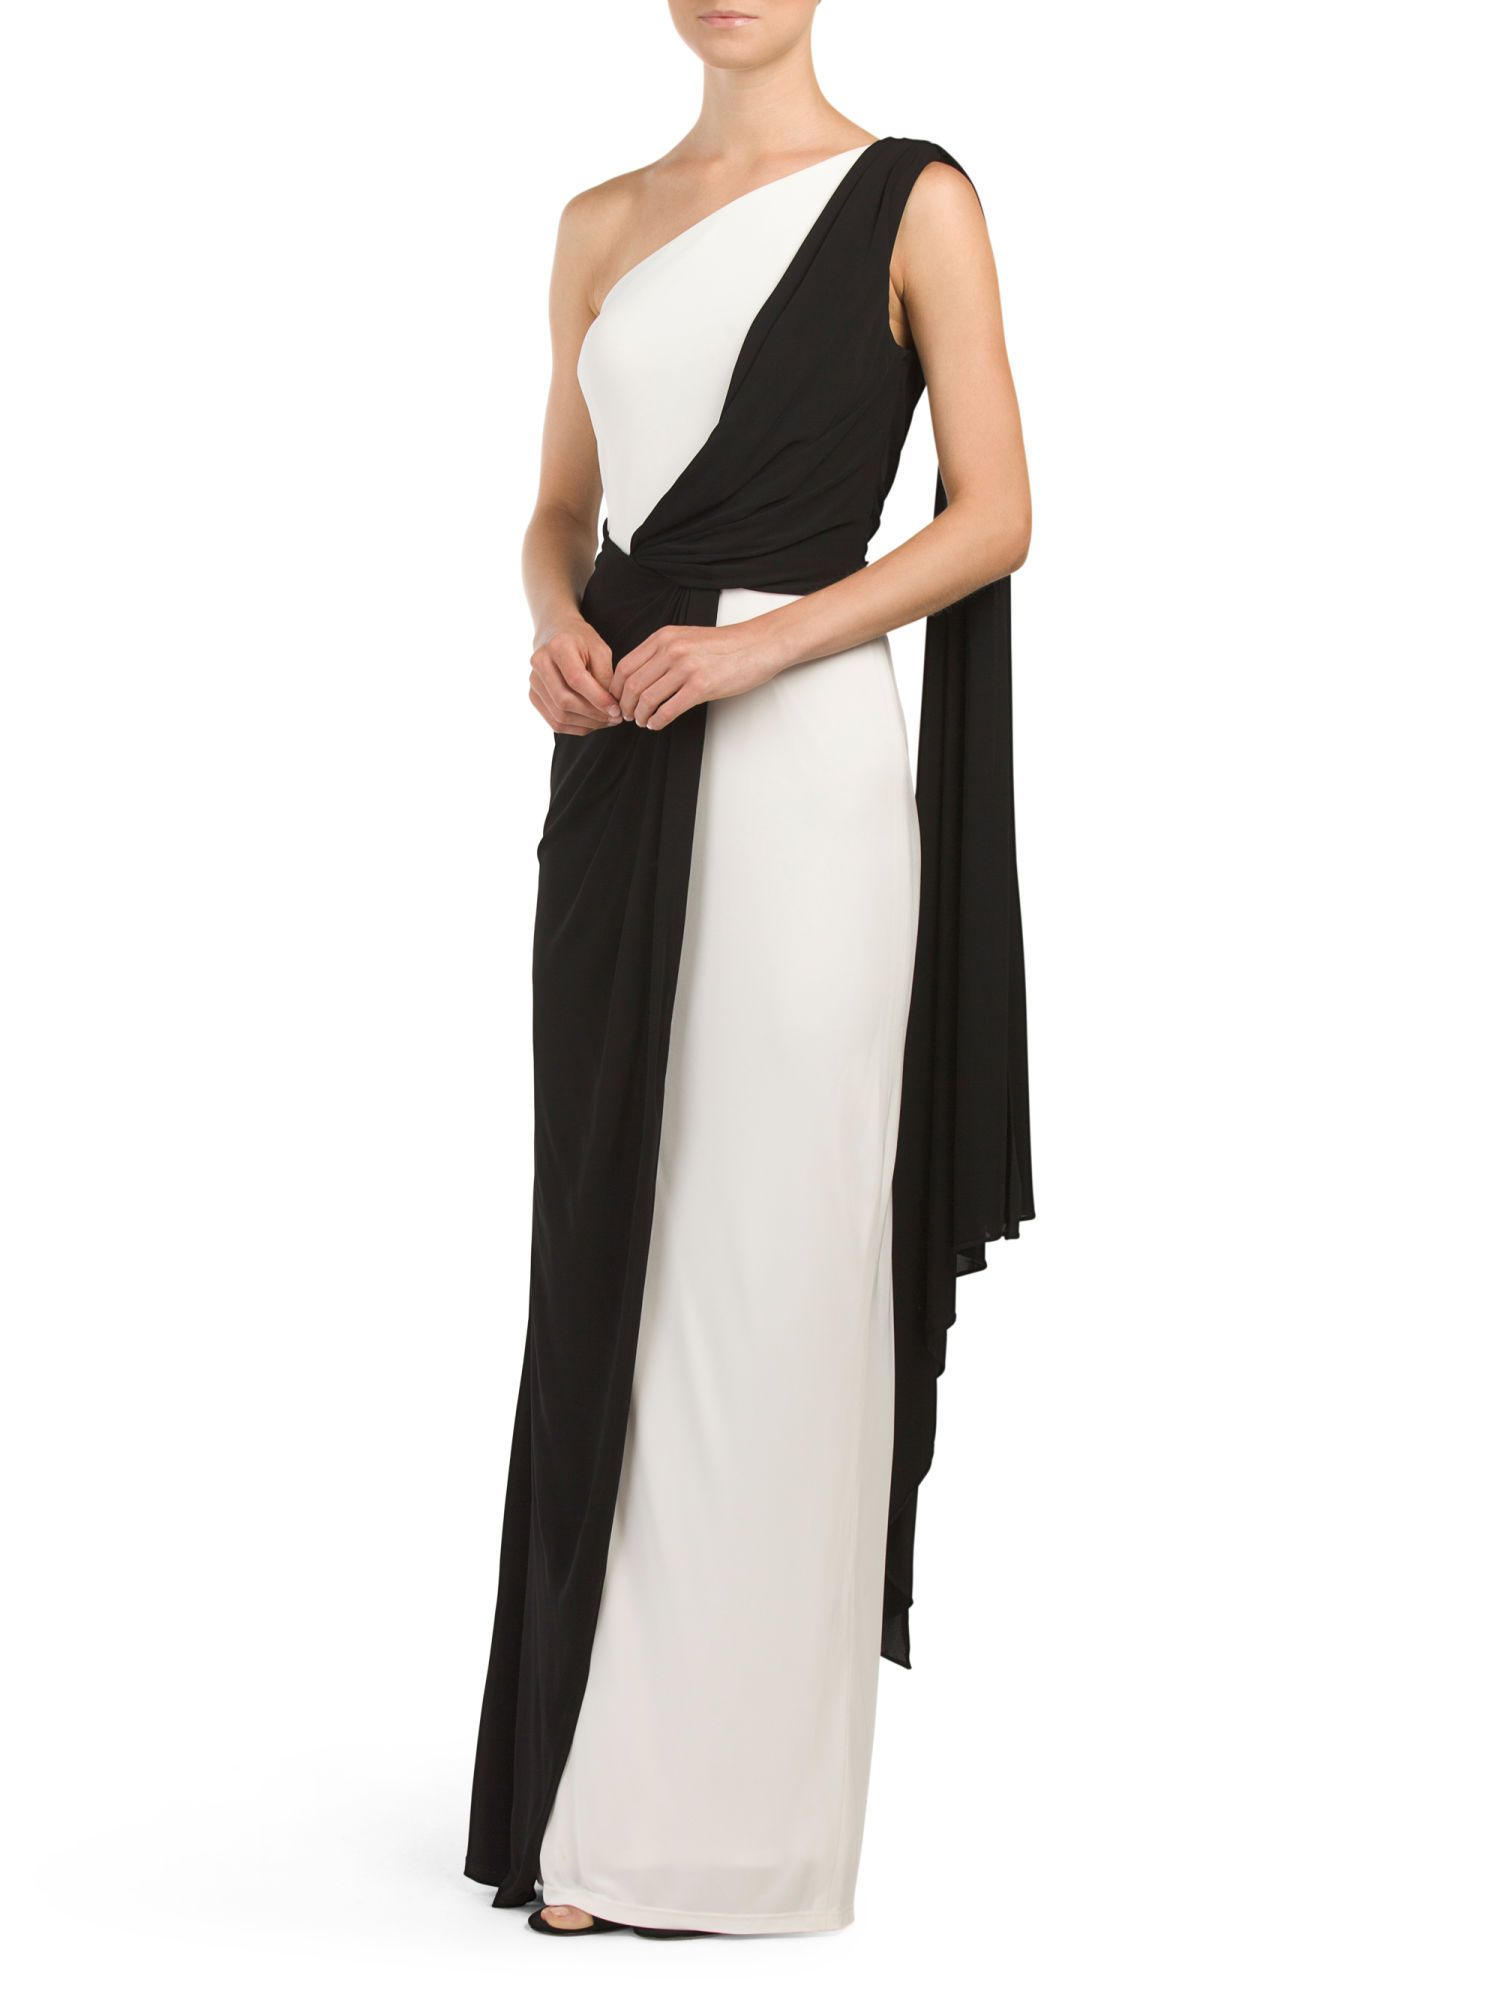 DAVID MEISTER Jersey One Shoulder Colorblock Gown $79.99 | TJ Maxx ...